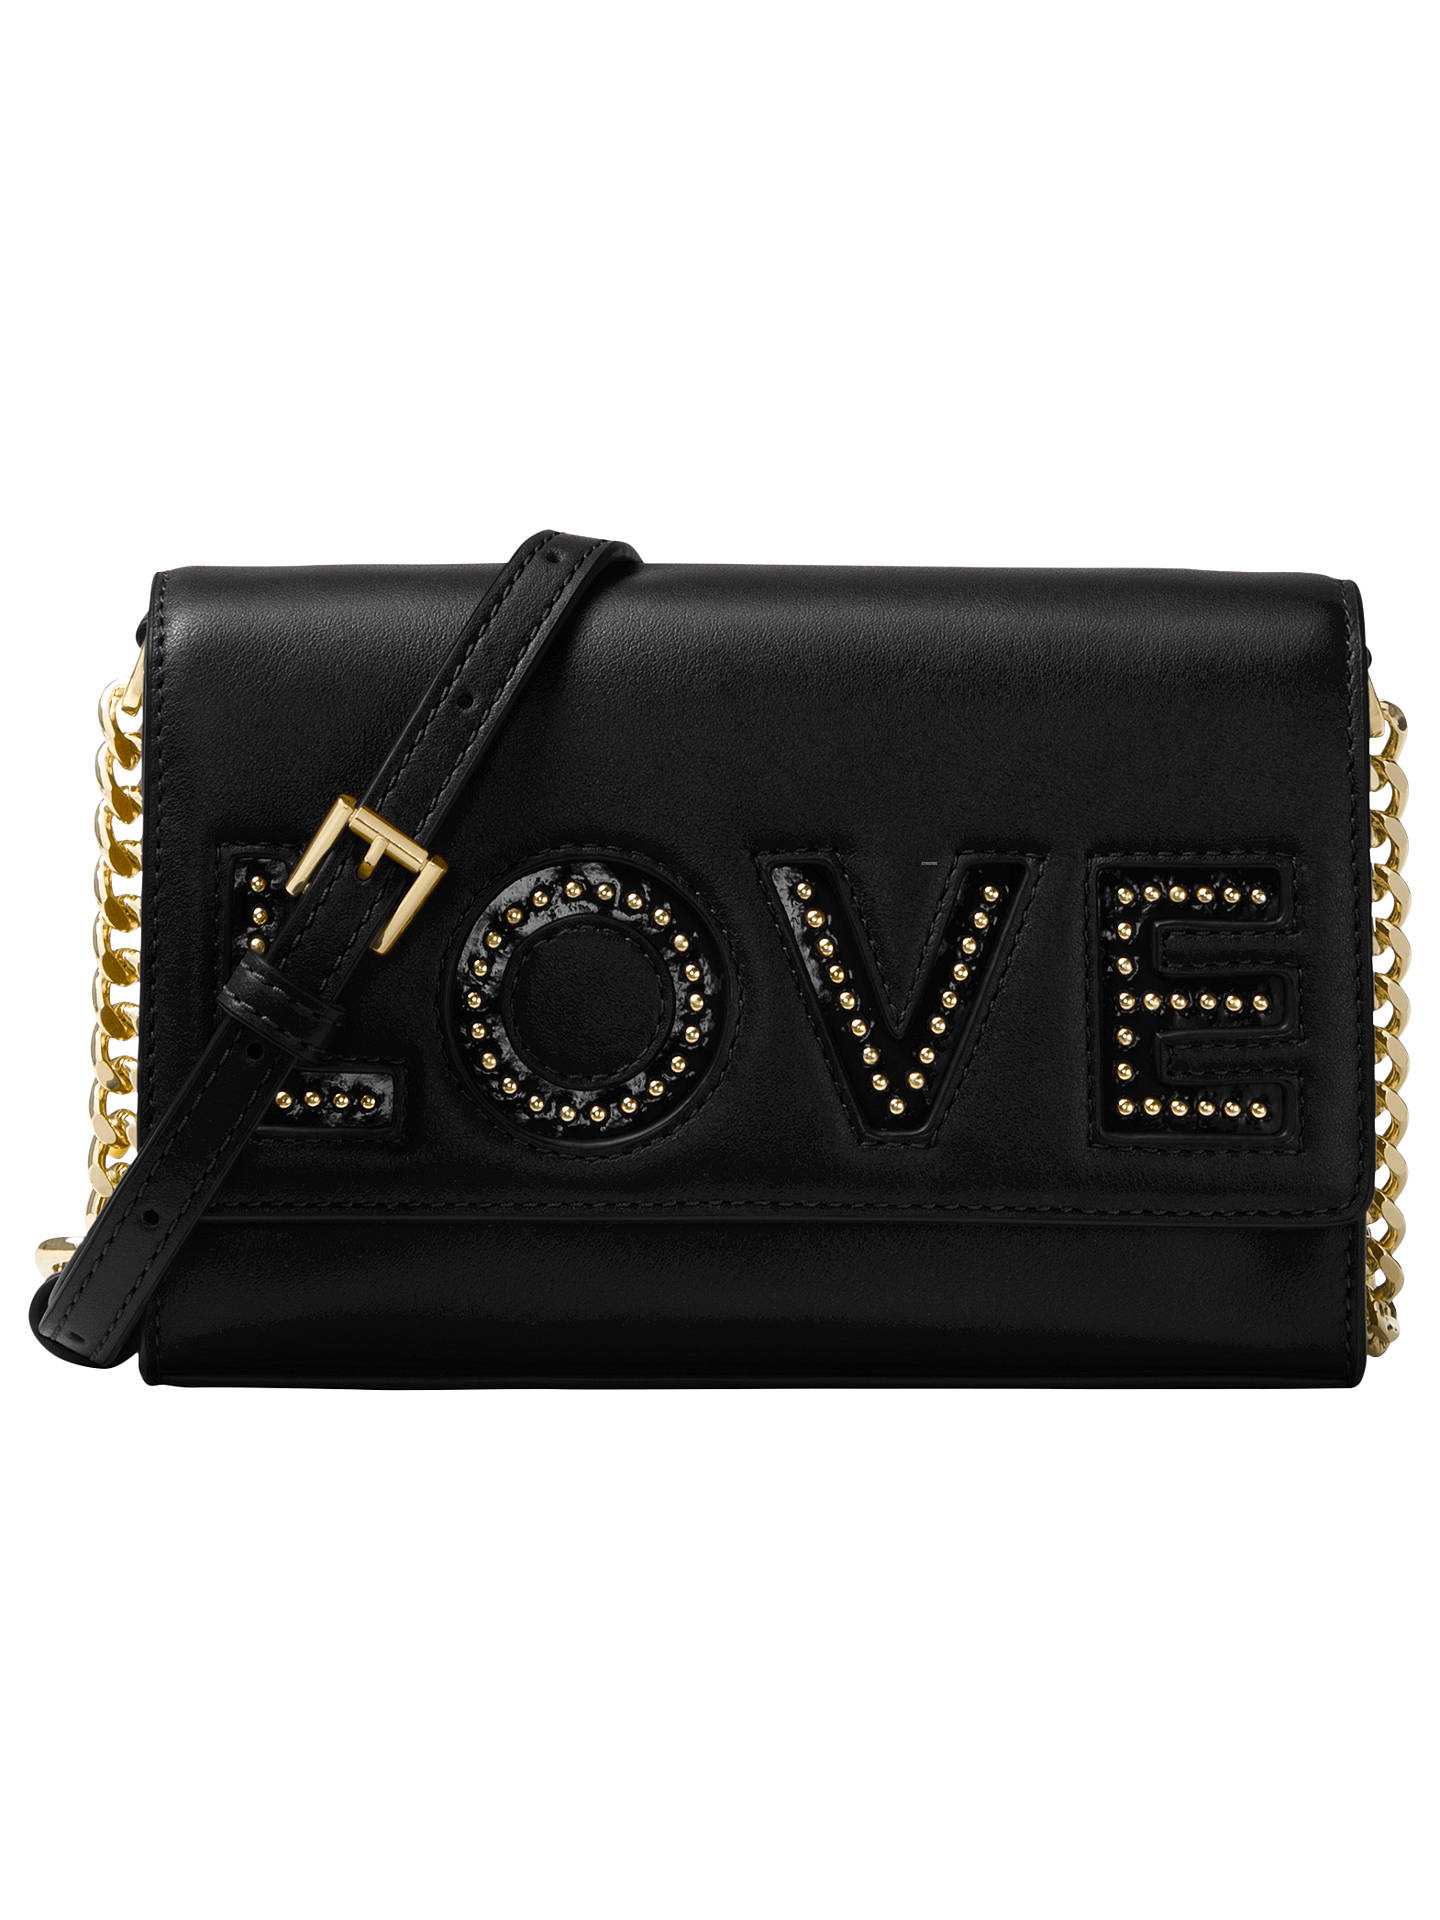 16b93b7c33cc Buy MICHAEL Michael Kors Ruby Leather 'Love' Clutch Bag, Black Online at  johnlewis ...